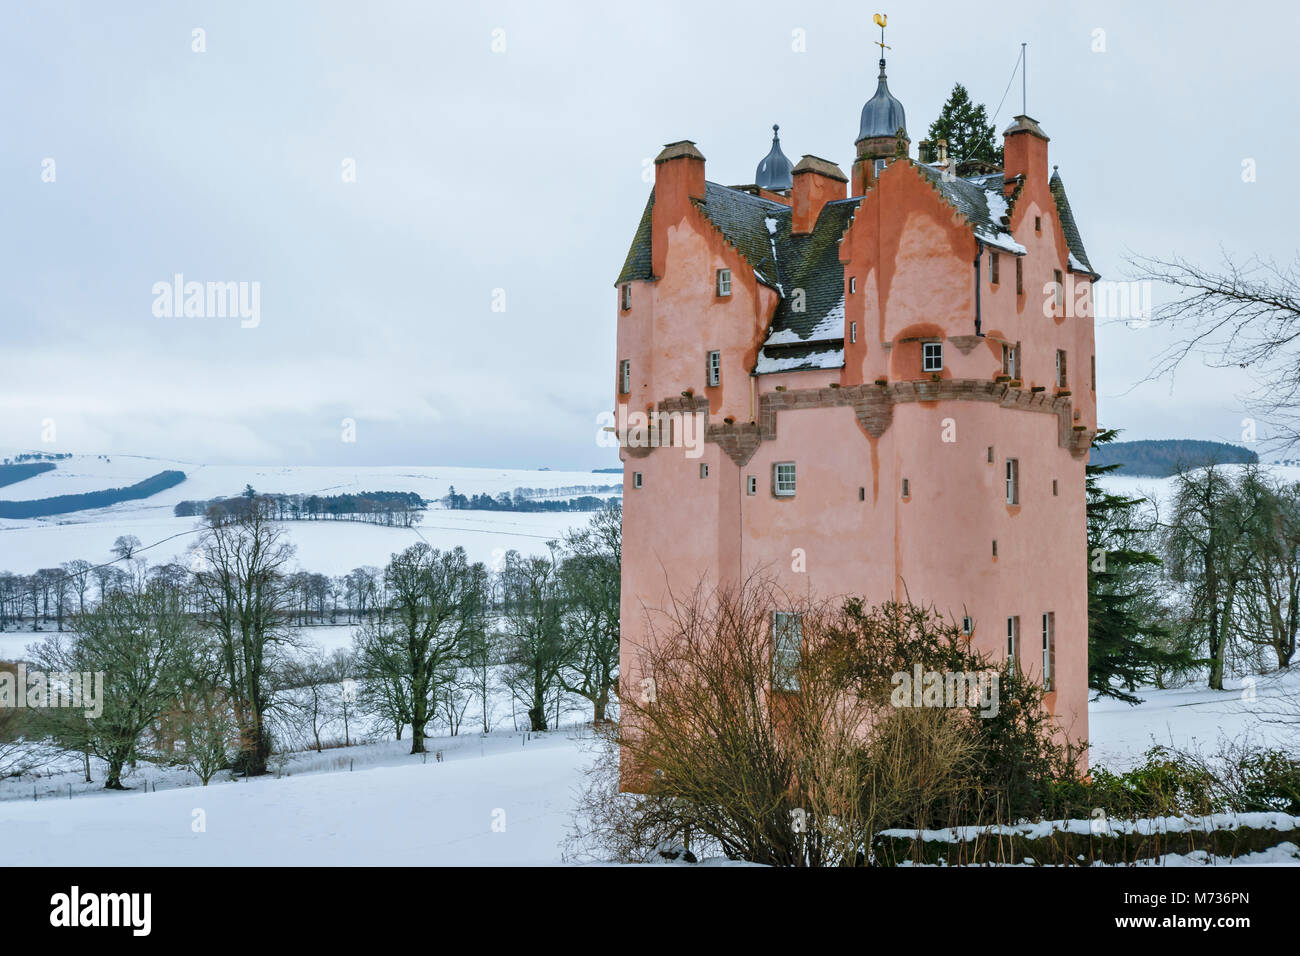 CRAIGIEVAR CASTLE ABERDEENSHIRE SCOTLAND THE PINK TOWER ON A SNOW COVERED HILL WITH TREES OVERLOOKING THE WINTER - Stock Image